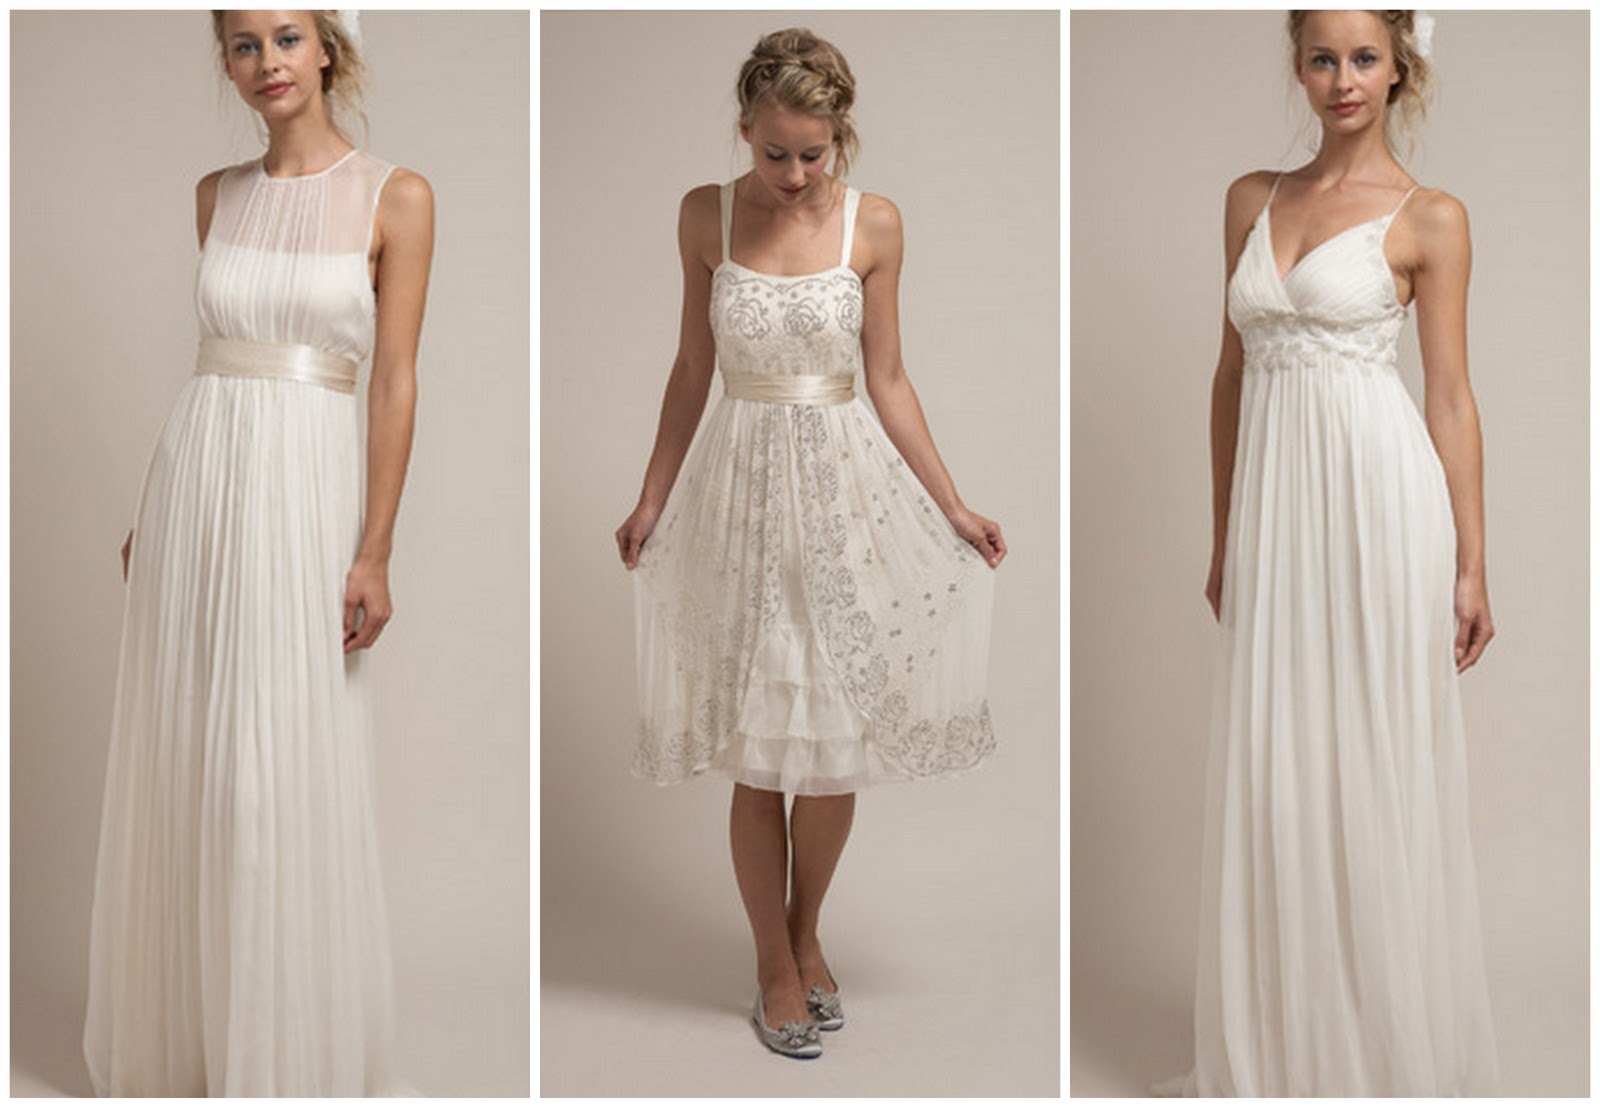 Summer Casual Wedding Attire - Dress images